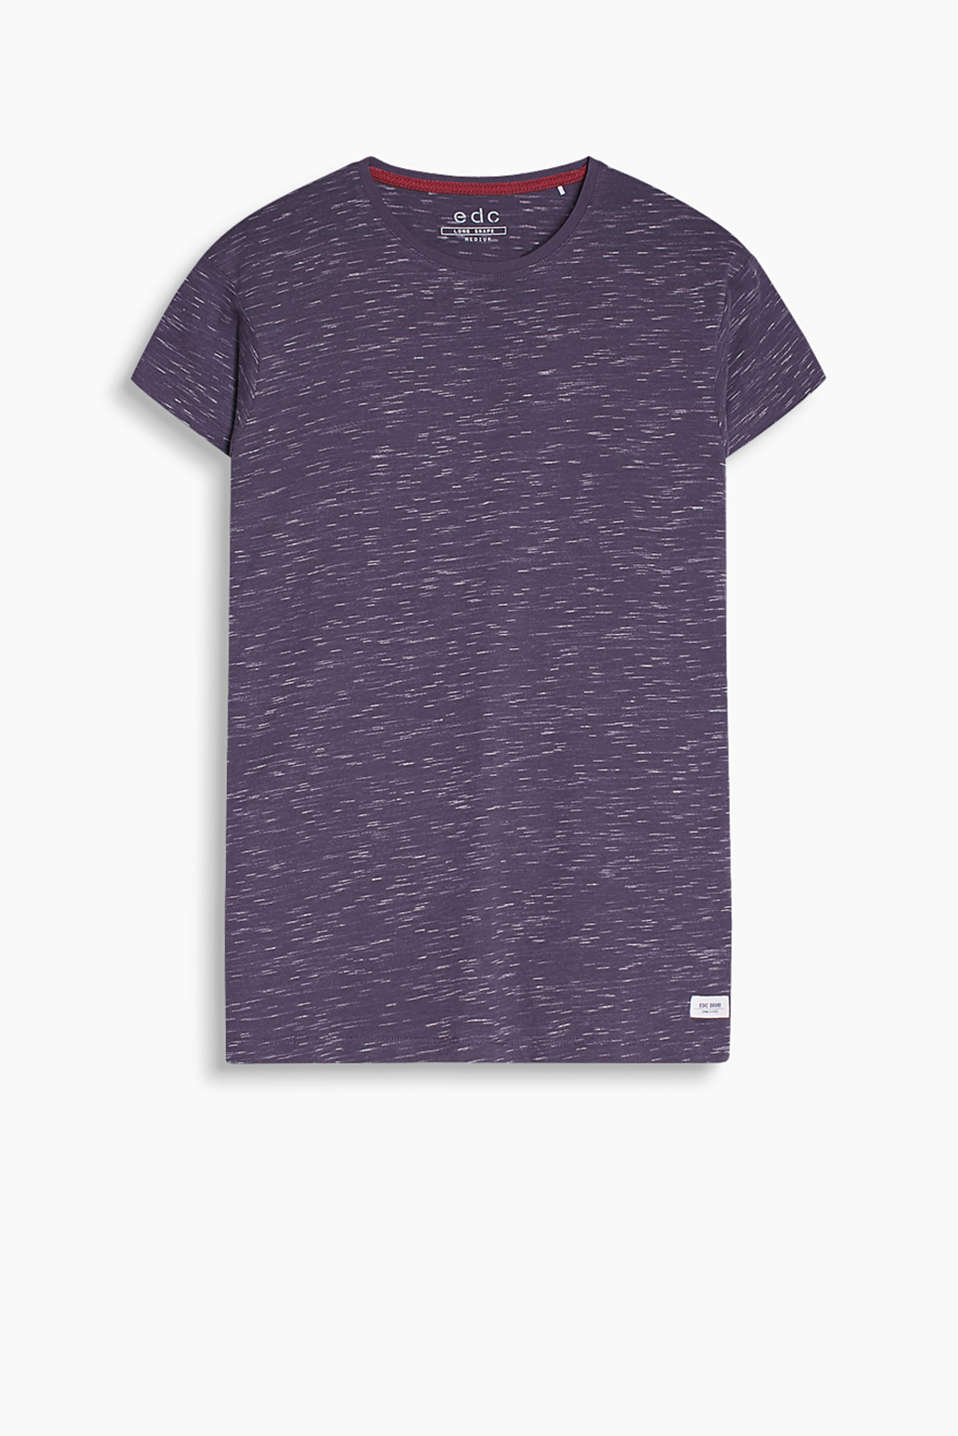 T-shirt in 100% cotton with a round neckline, melange texture and cropped sleeves